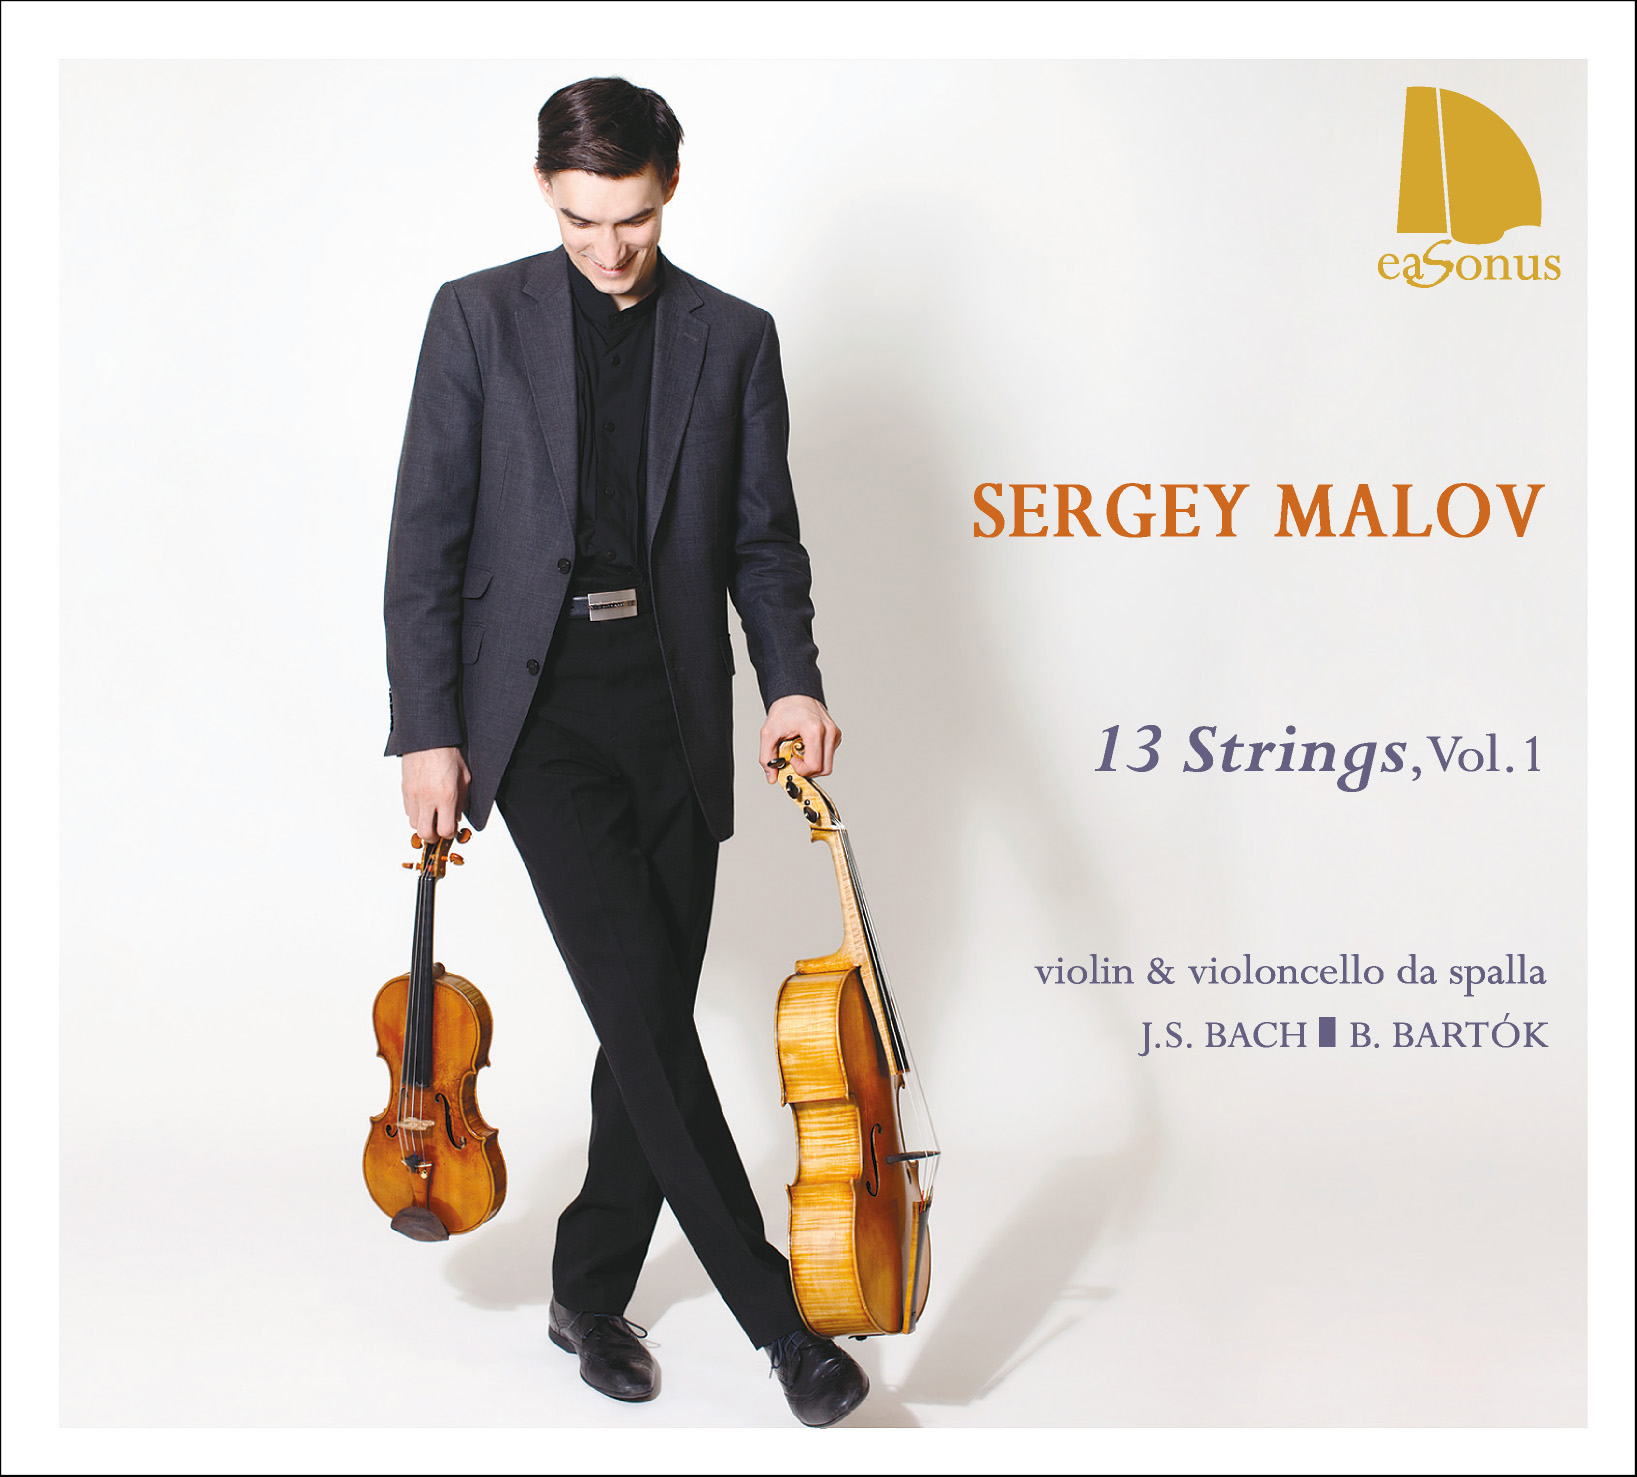 13 Strings, Vol.1-Sergey Malov